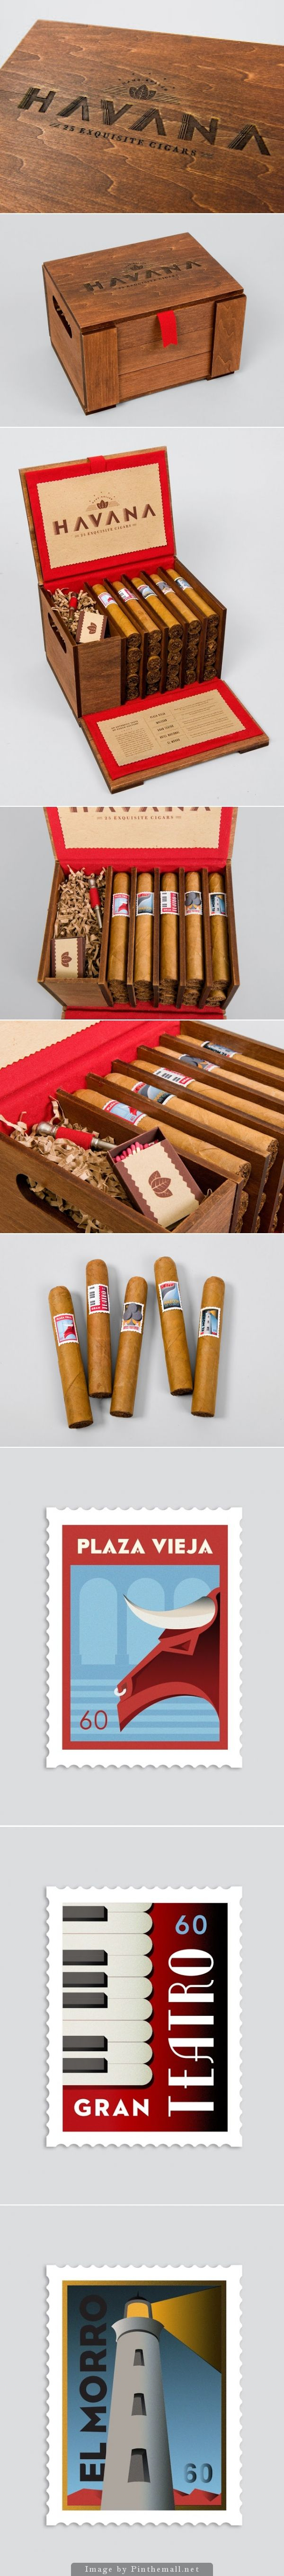 Havana Cigars (Student Project)